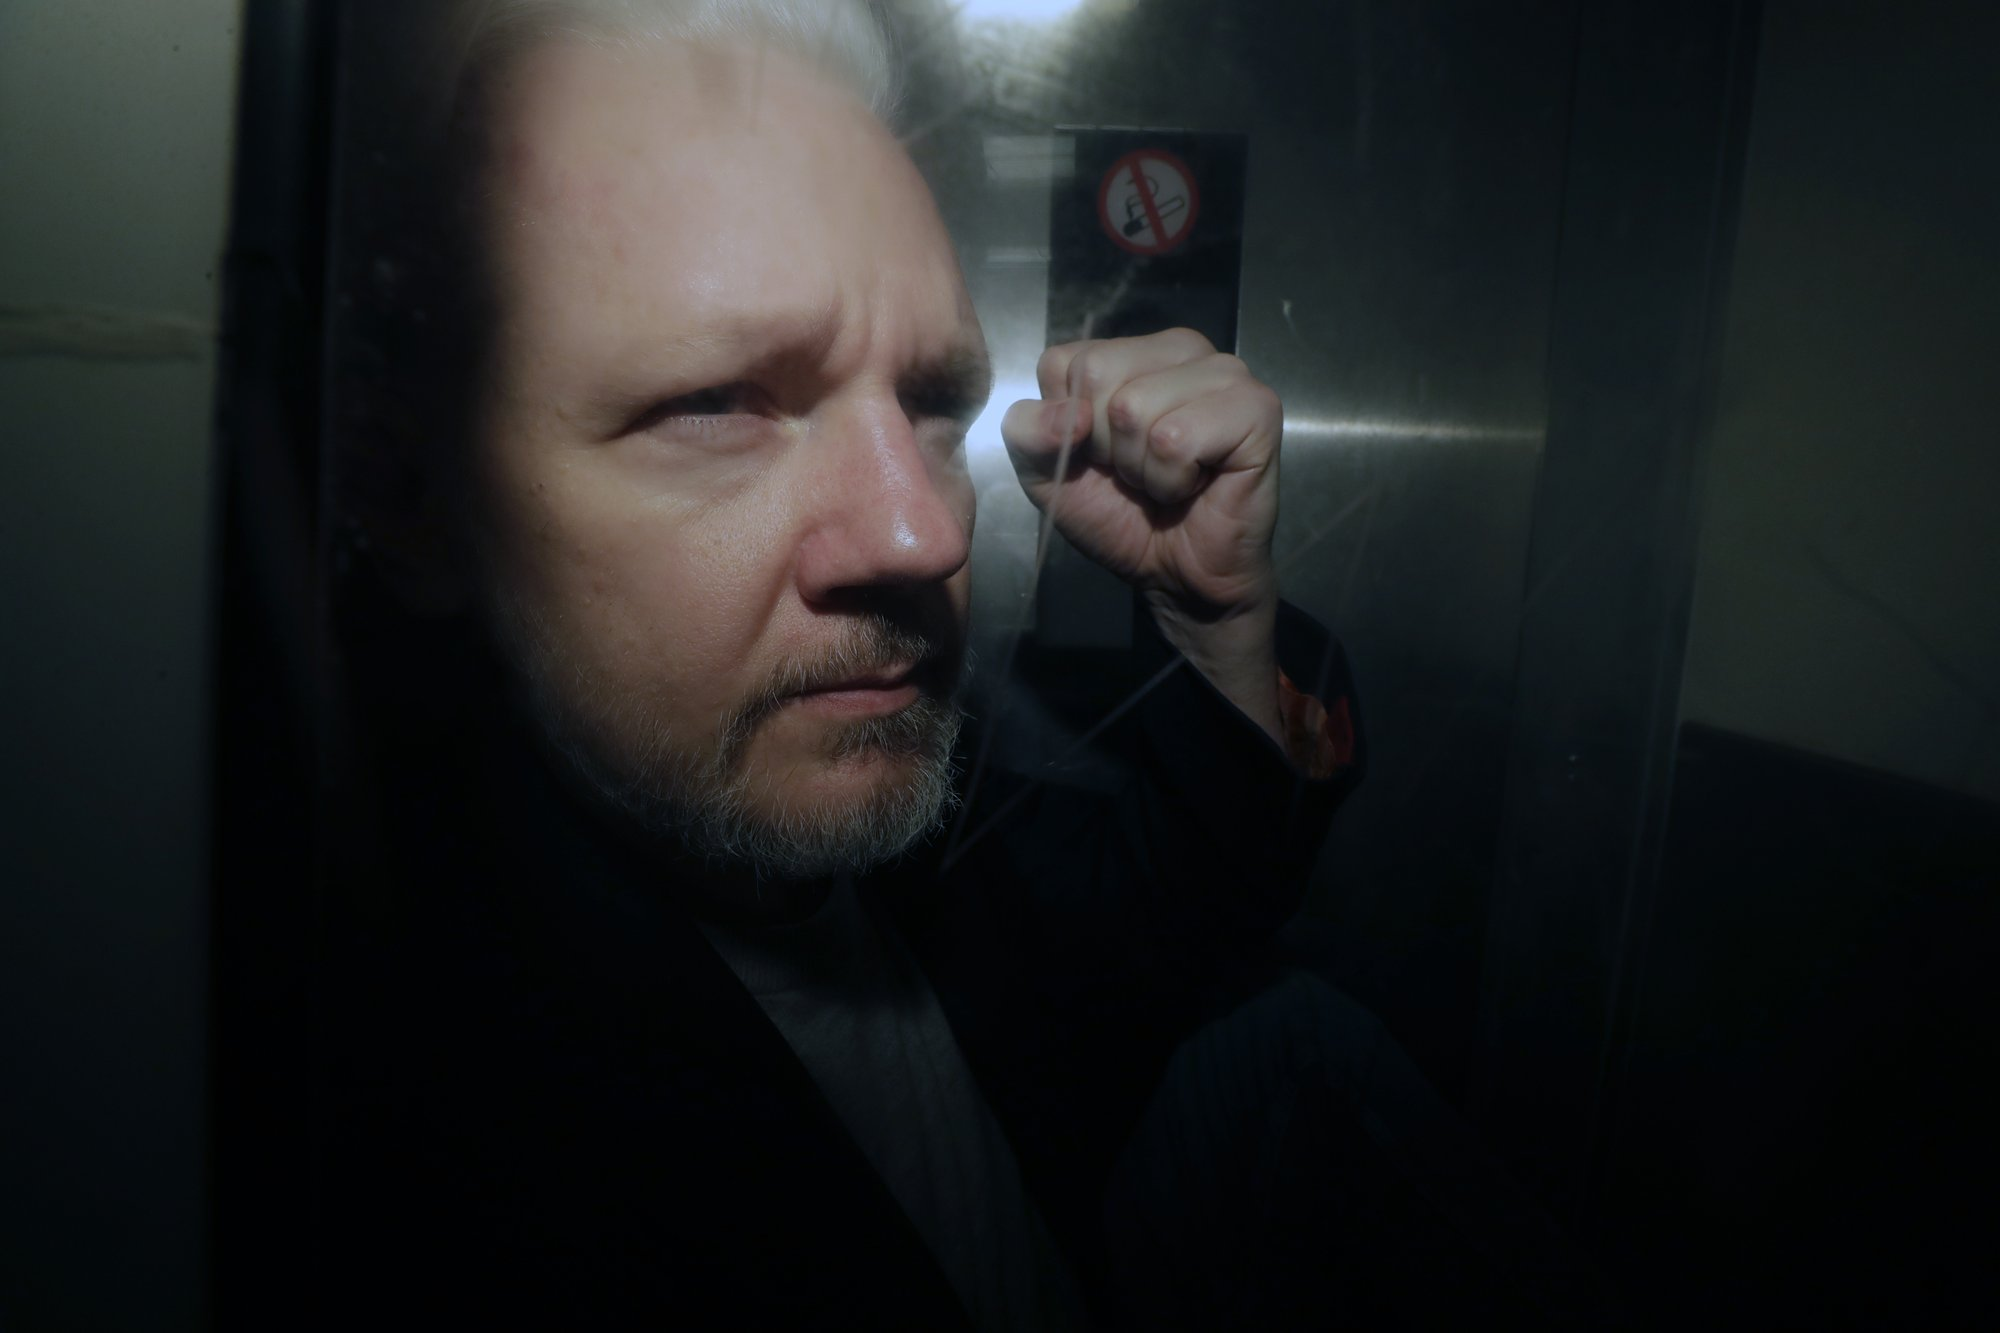 Julian Assange - May 1, 2019